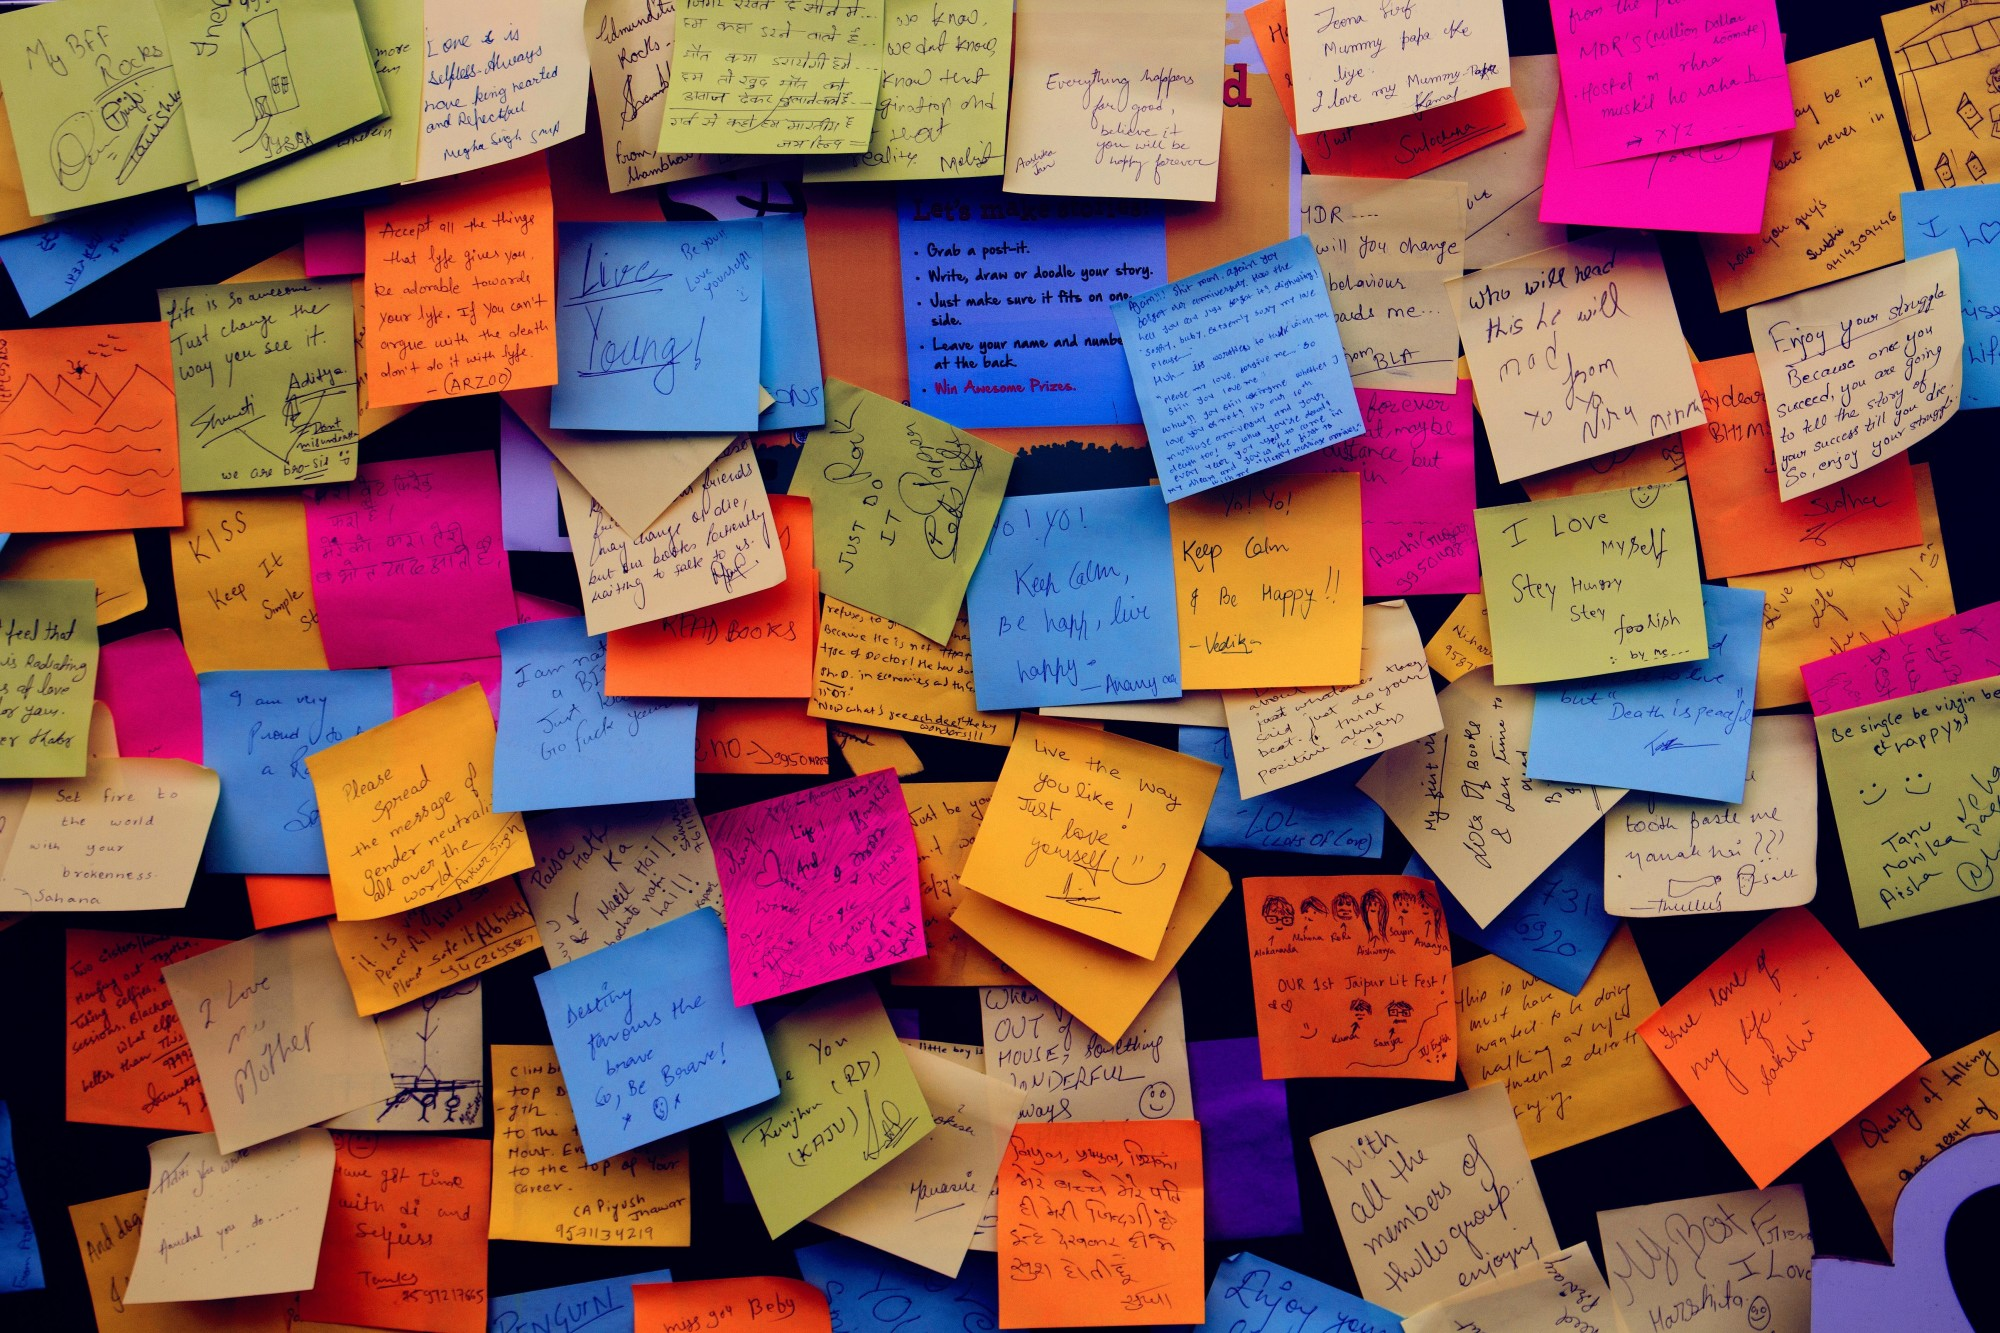 Work Sticky Notes